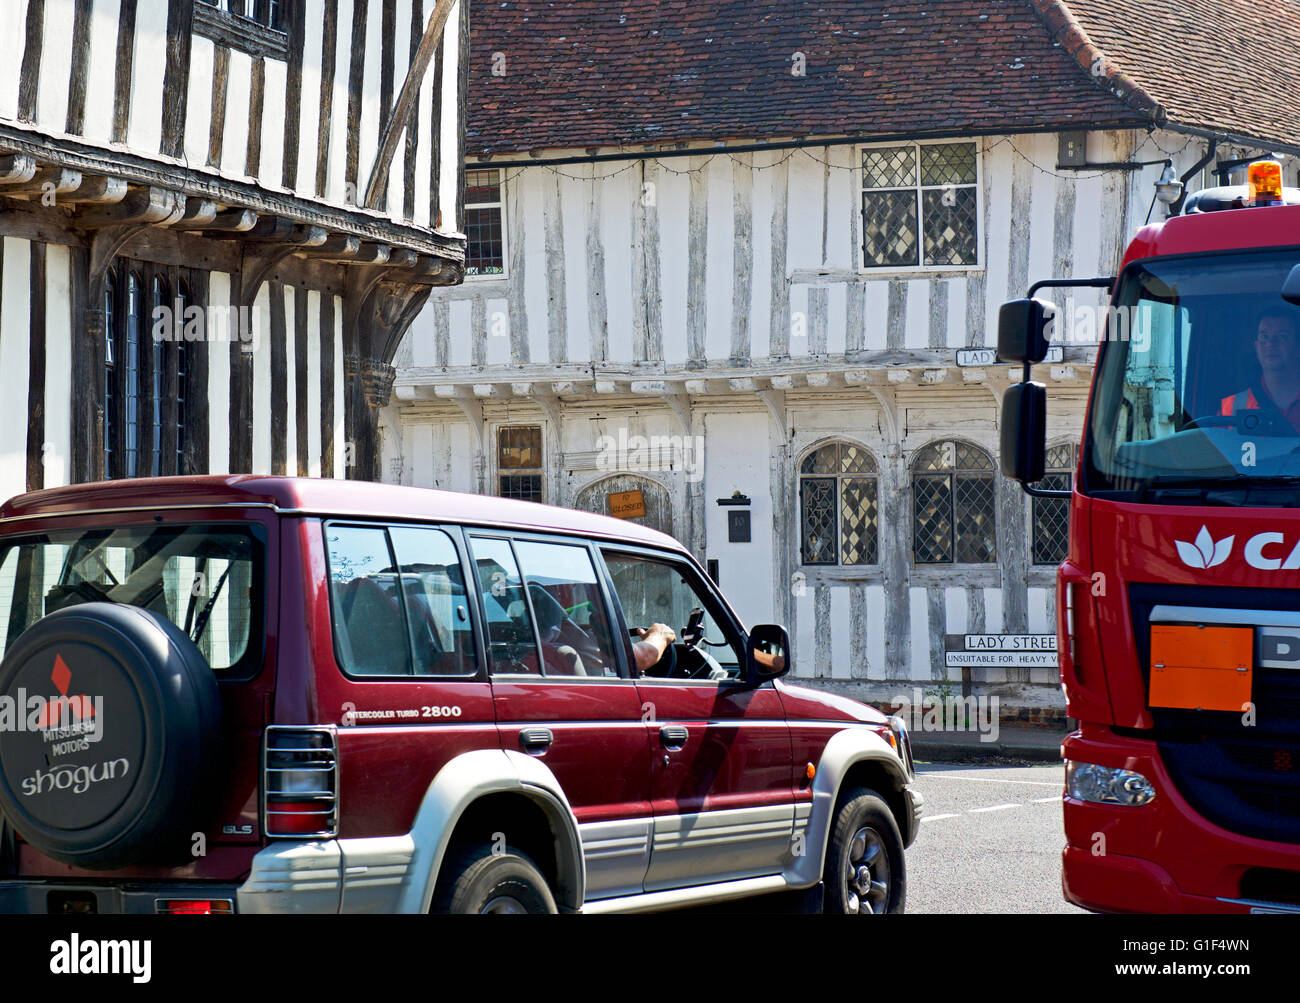 Traffic in the medieval village of Lavenham, Suffolk, England UK - Stock Image